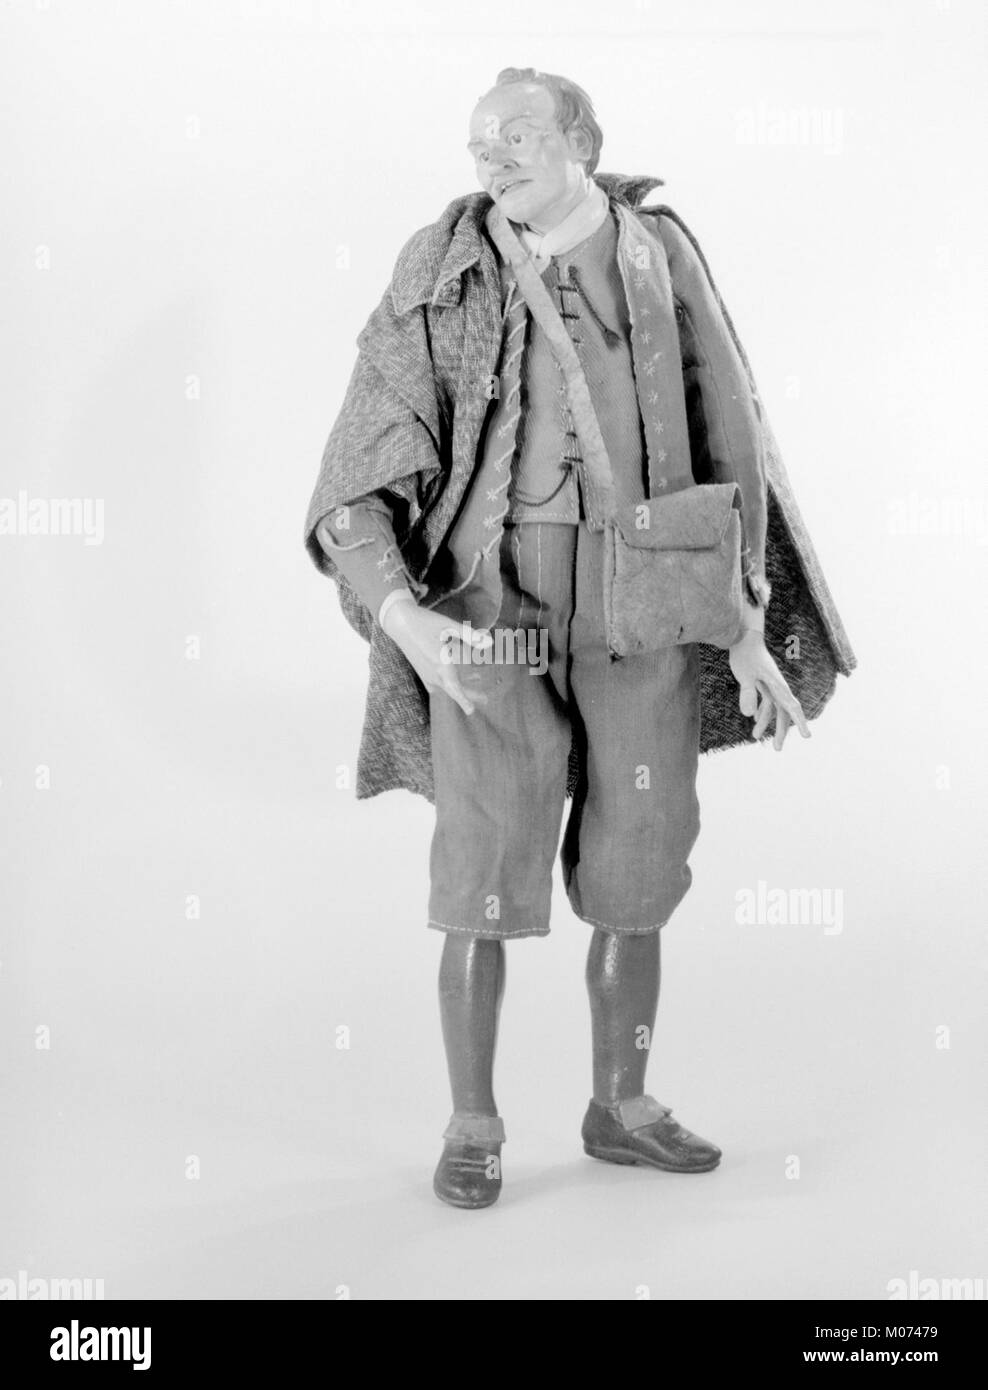 Man with cape and leather pouch MET 213512(2) - Stock Image